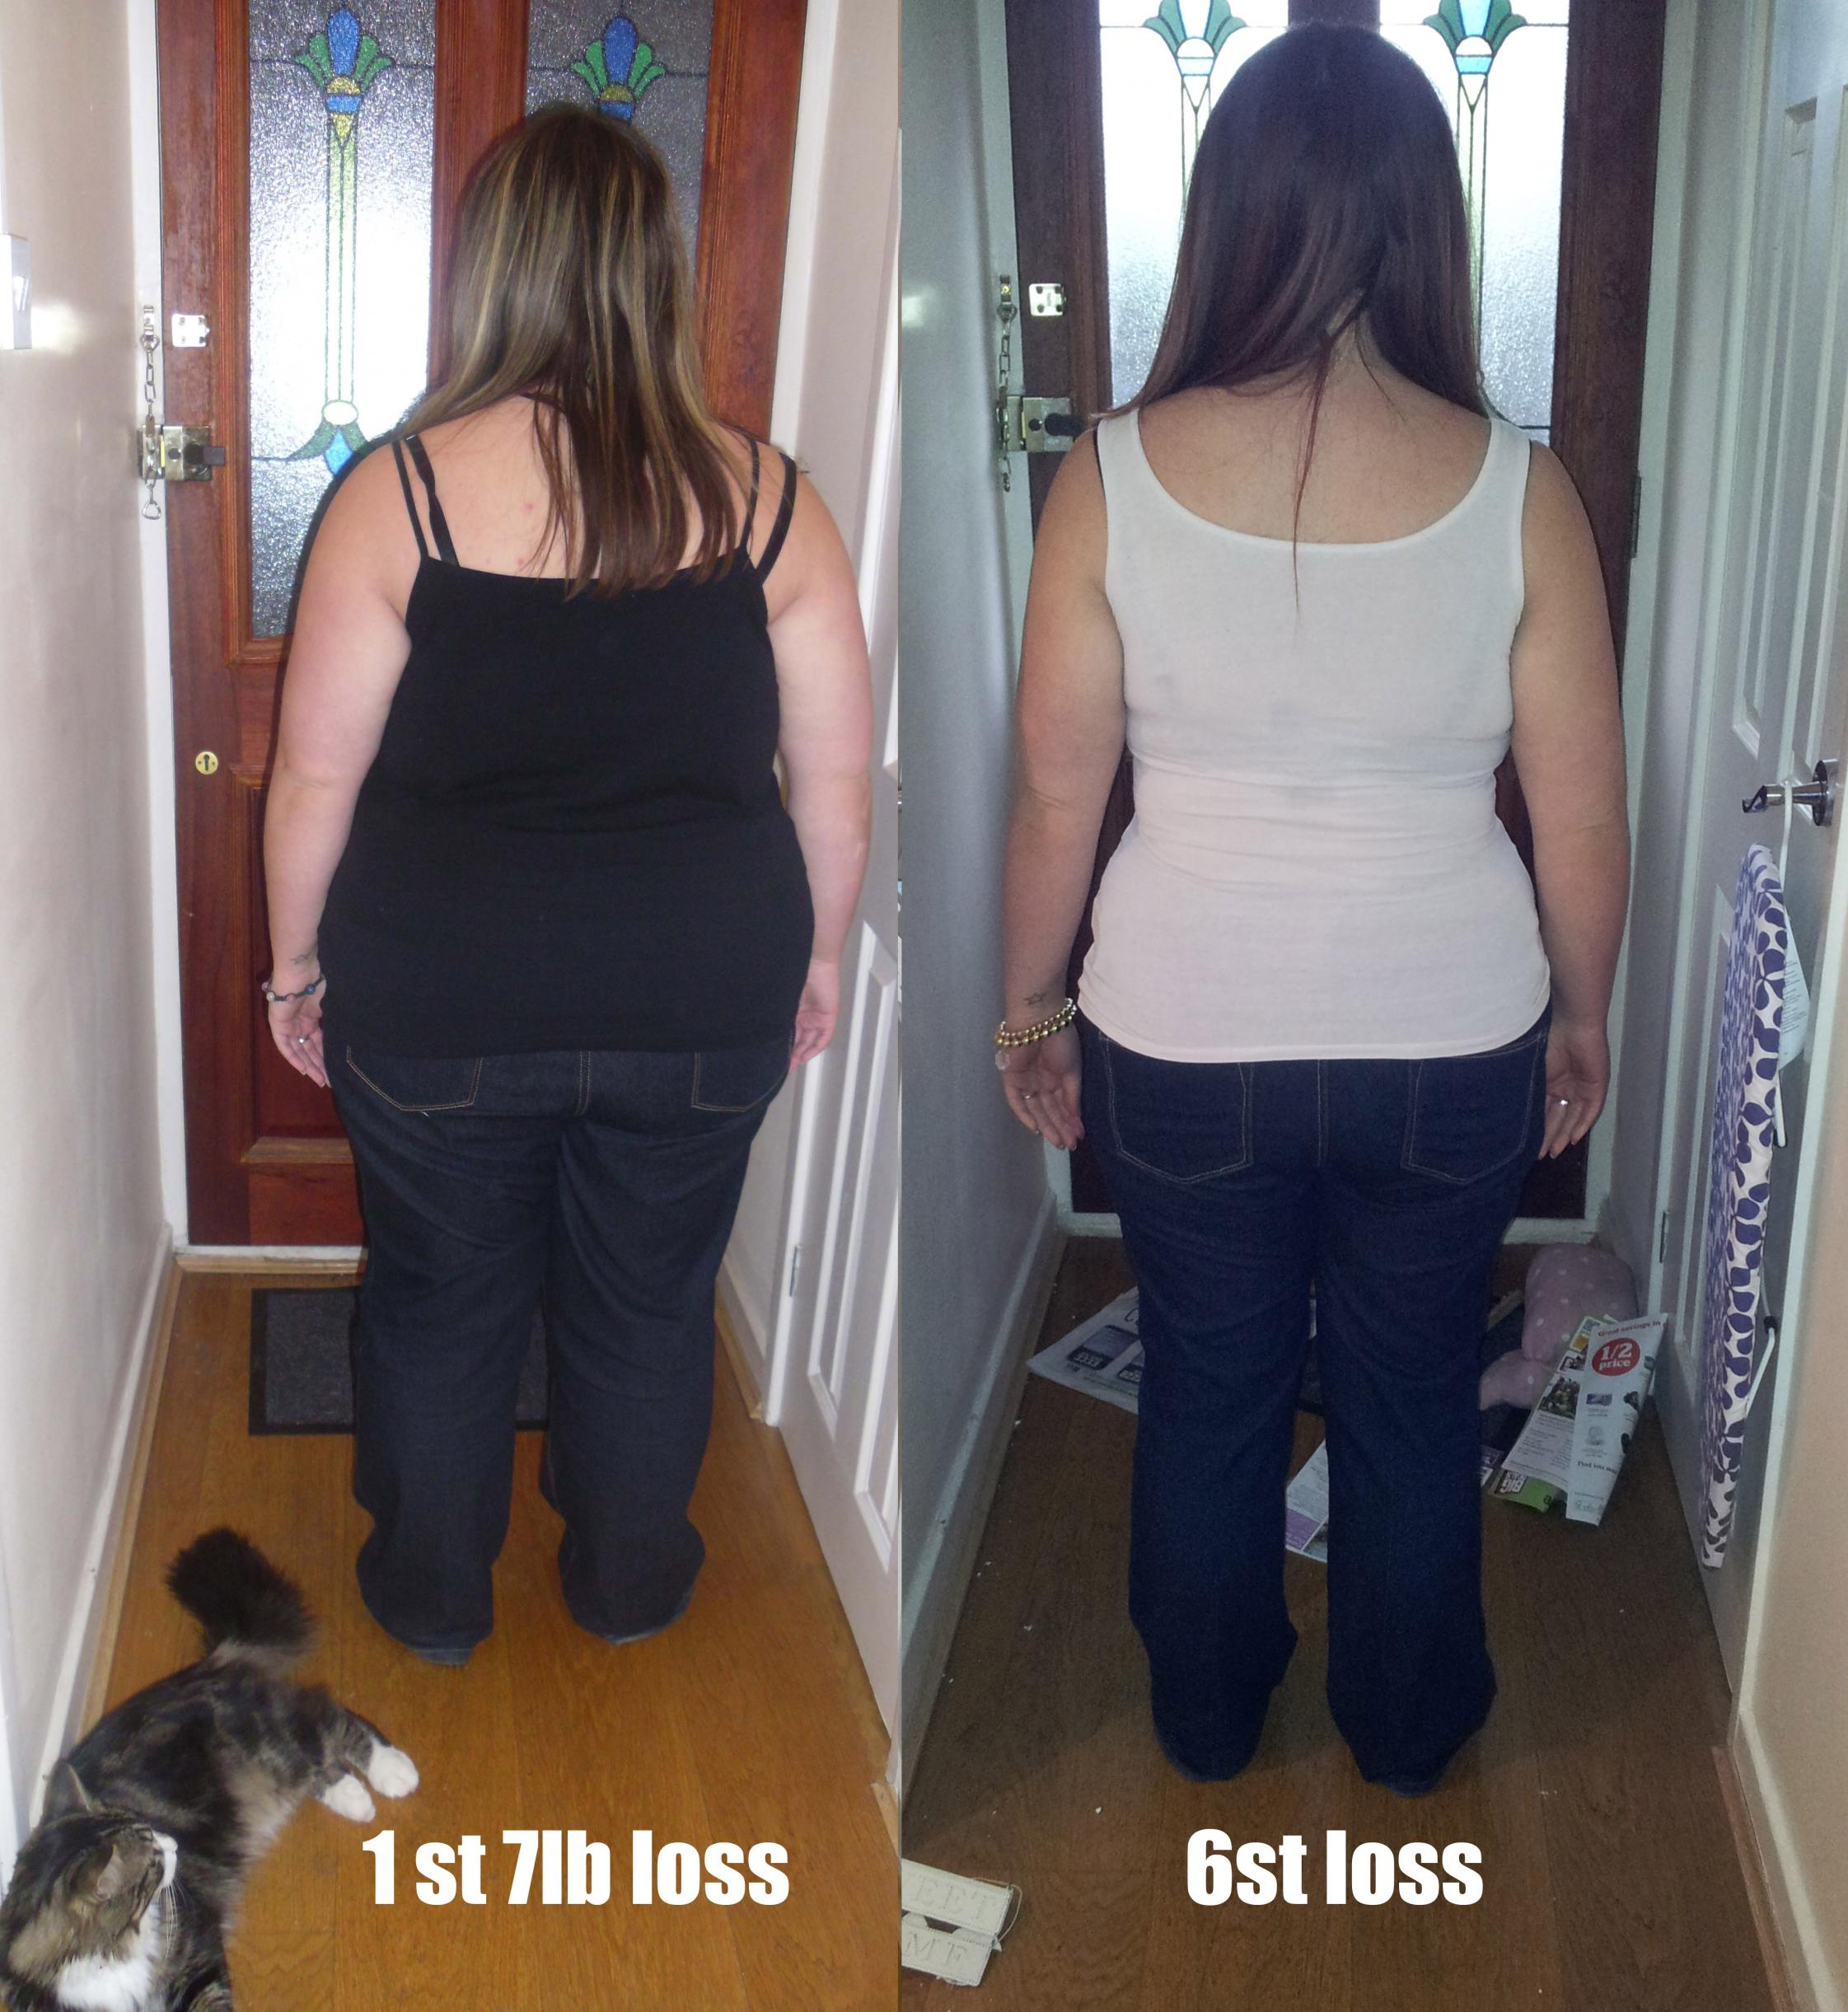 Weight loss Diary & General musings. - Page 86